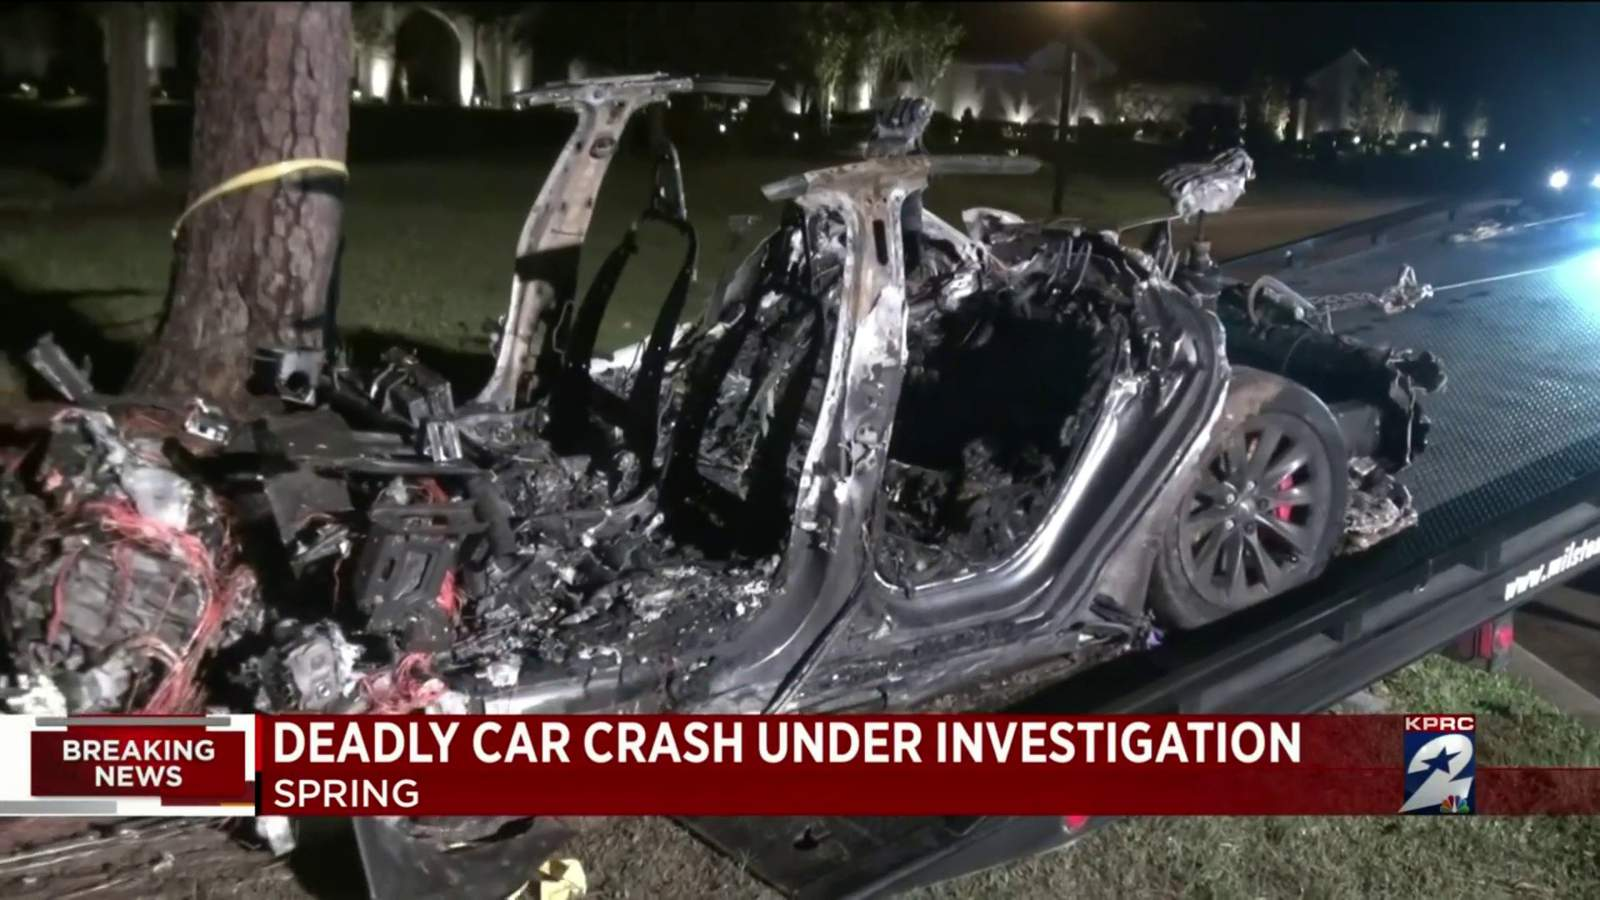 'No one was driving the car': 2 men dead after fiery Tesla crash in Spring, officials say